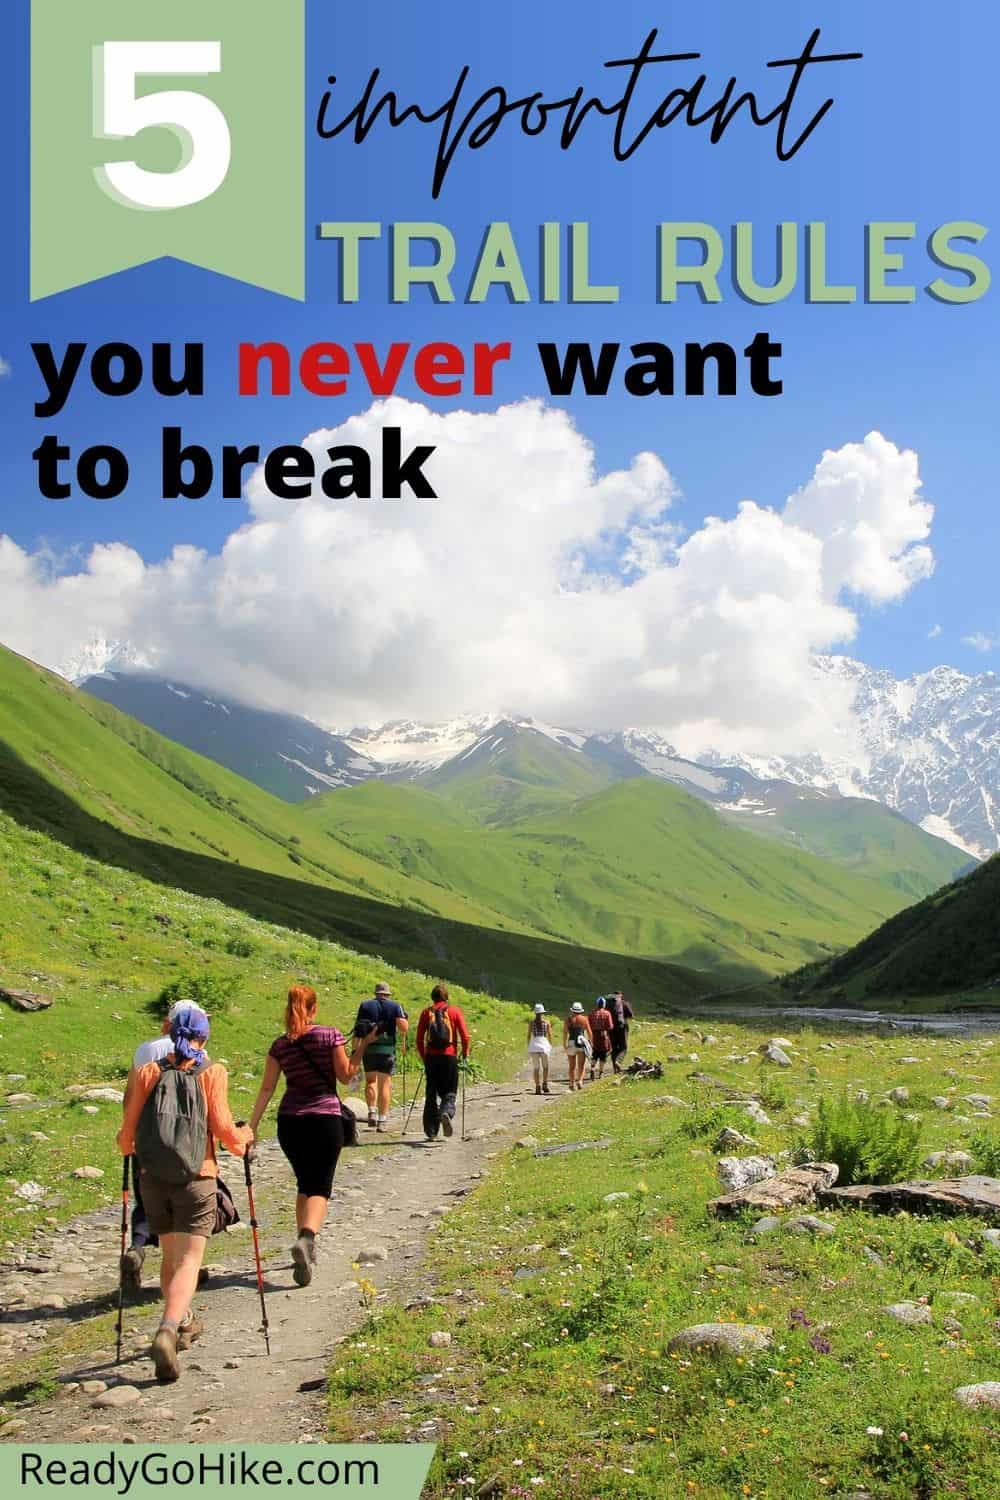 Group of hikers on trail with text overlay 5 Important Trail Rules You Never Want to Break